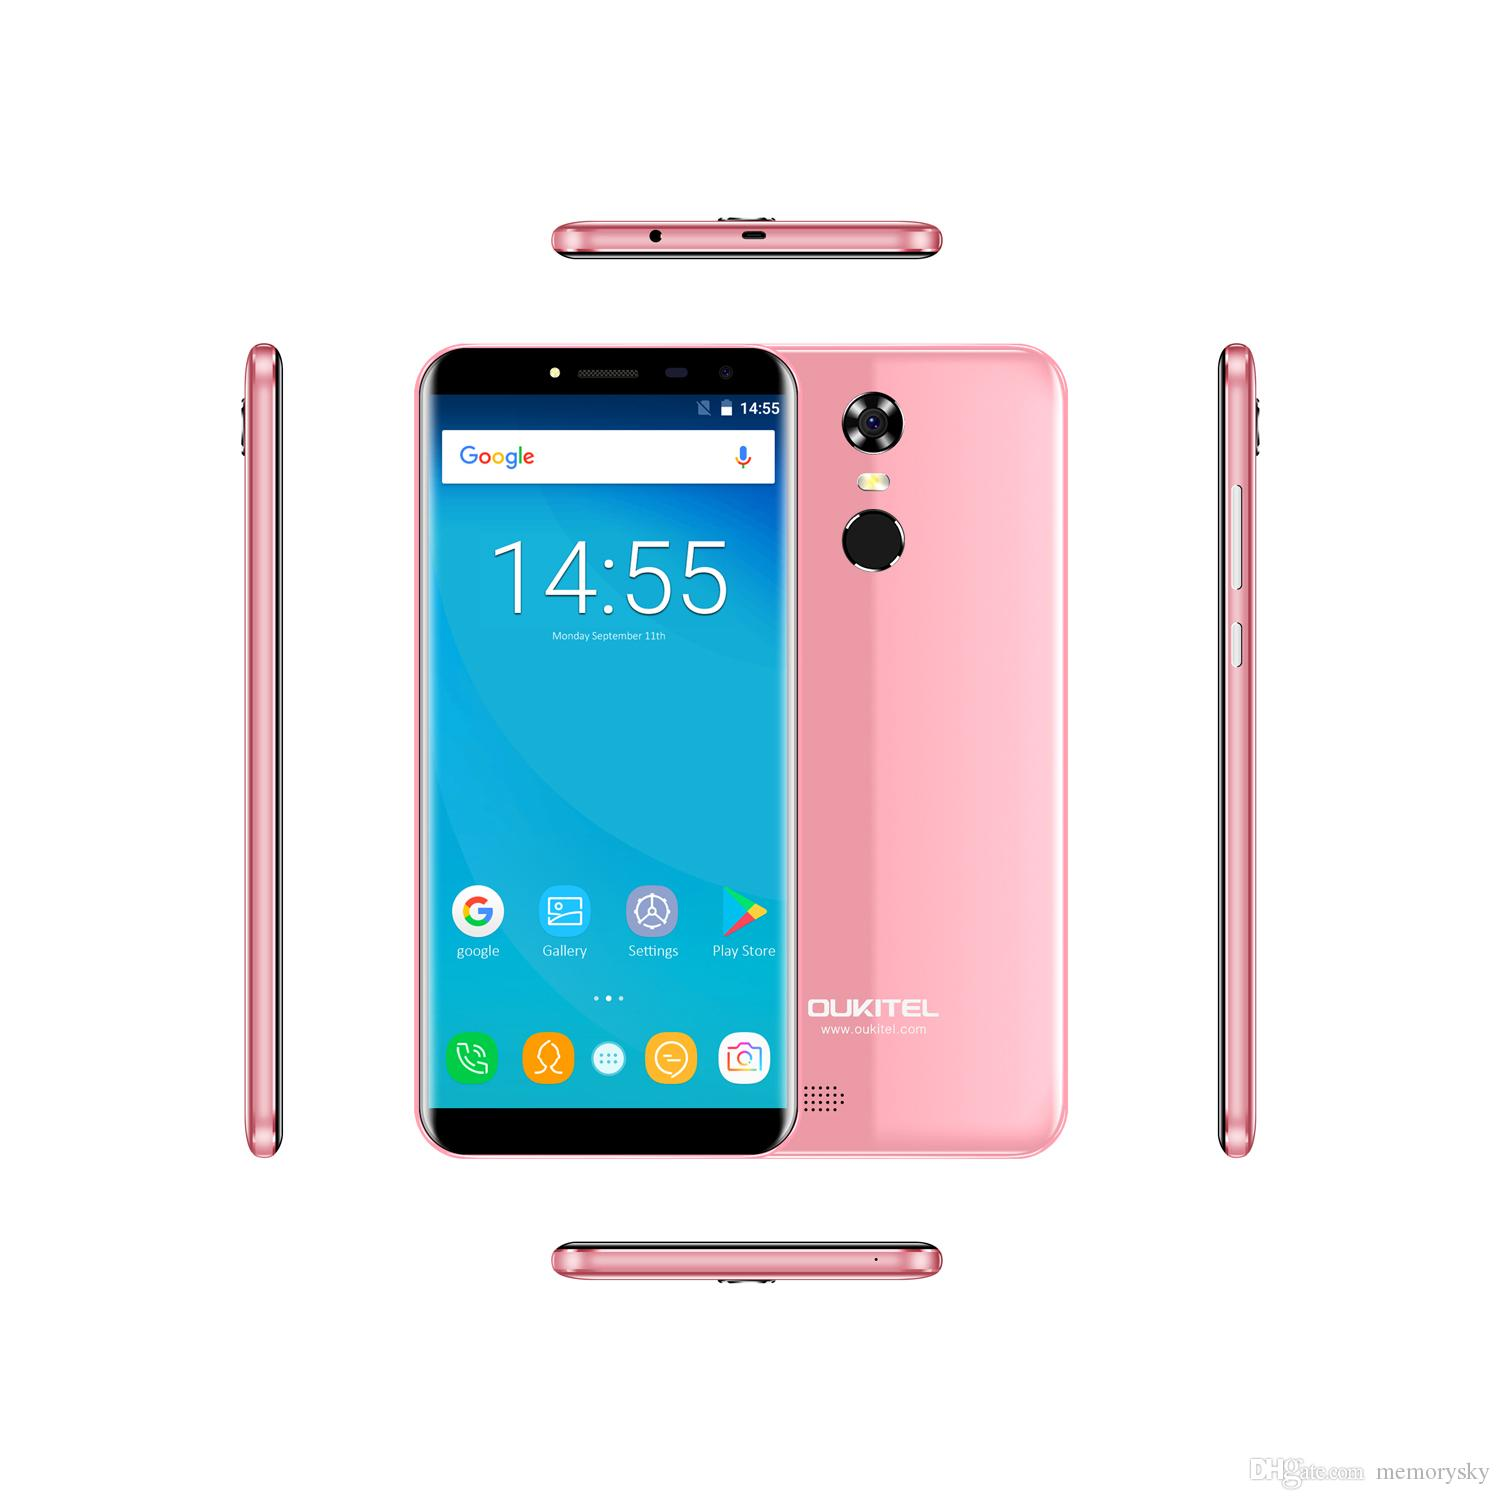 Best Oukitel C8 5 5inches Quadcore 2gb Ram 16gb Rom 4g Android 7 0 1 3ghz Unlocked Cell Phone Android Latest Phones Android Mobile Phones Price From